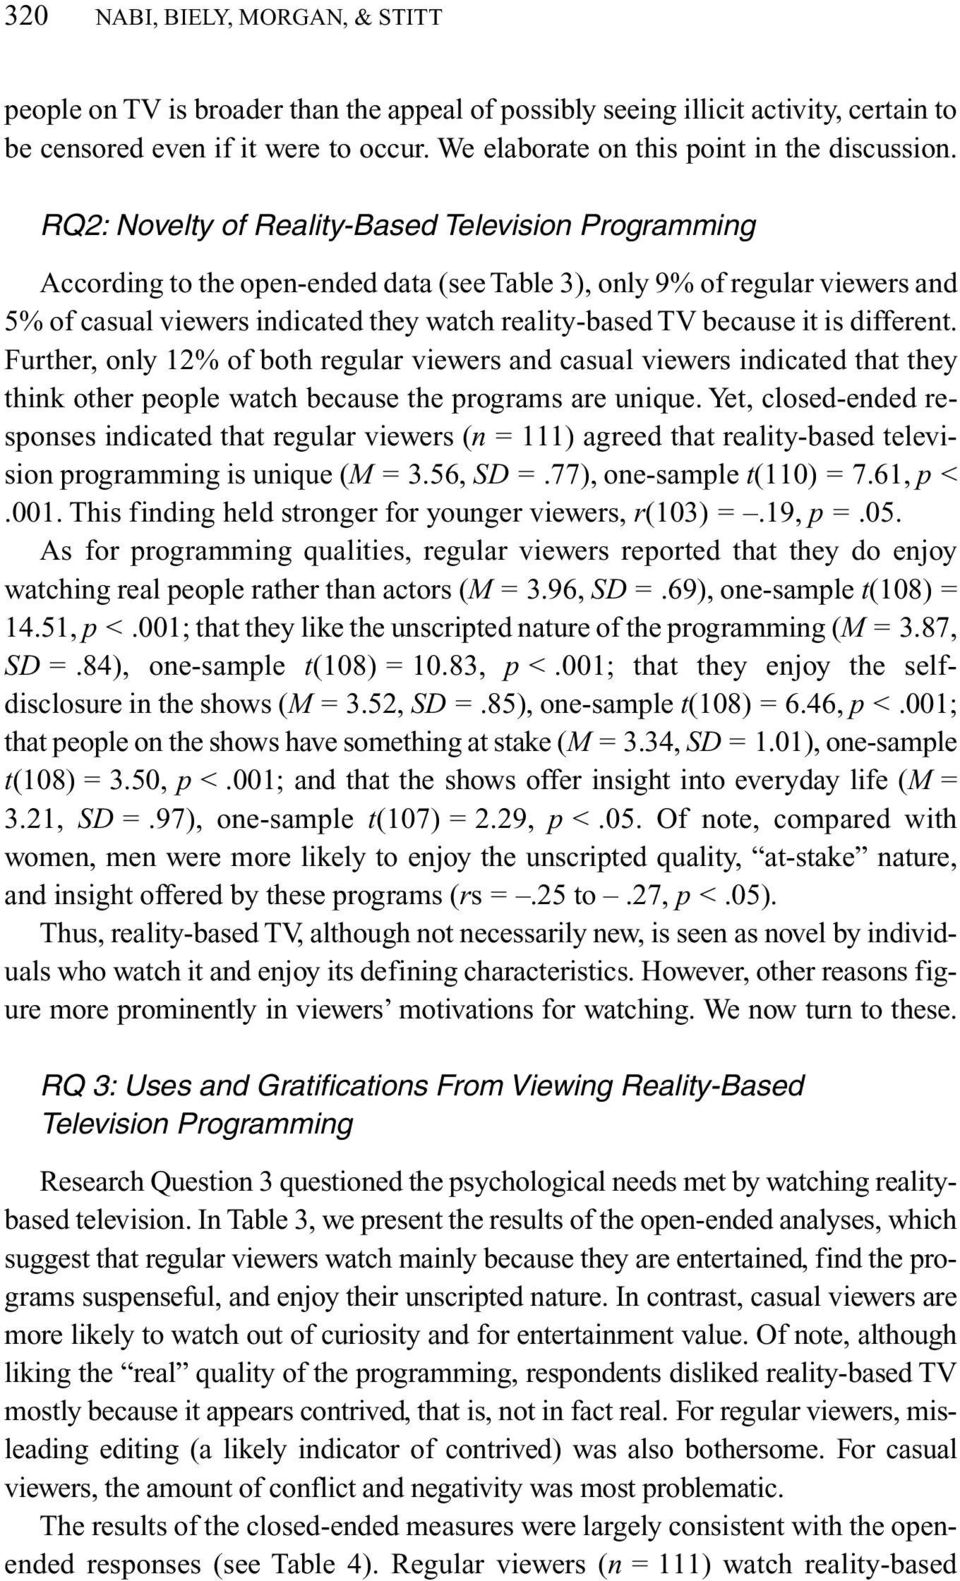 RQ2: Novelty of Reality-Based Television Programming According to the open-ended data (see Table 3), only 9% of regular viewers and 5% of casual viewers indicated they watch reality-based TV because